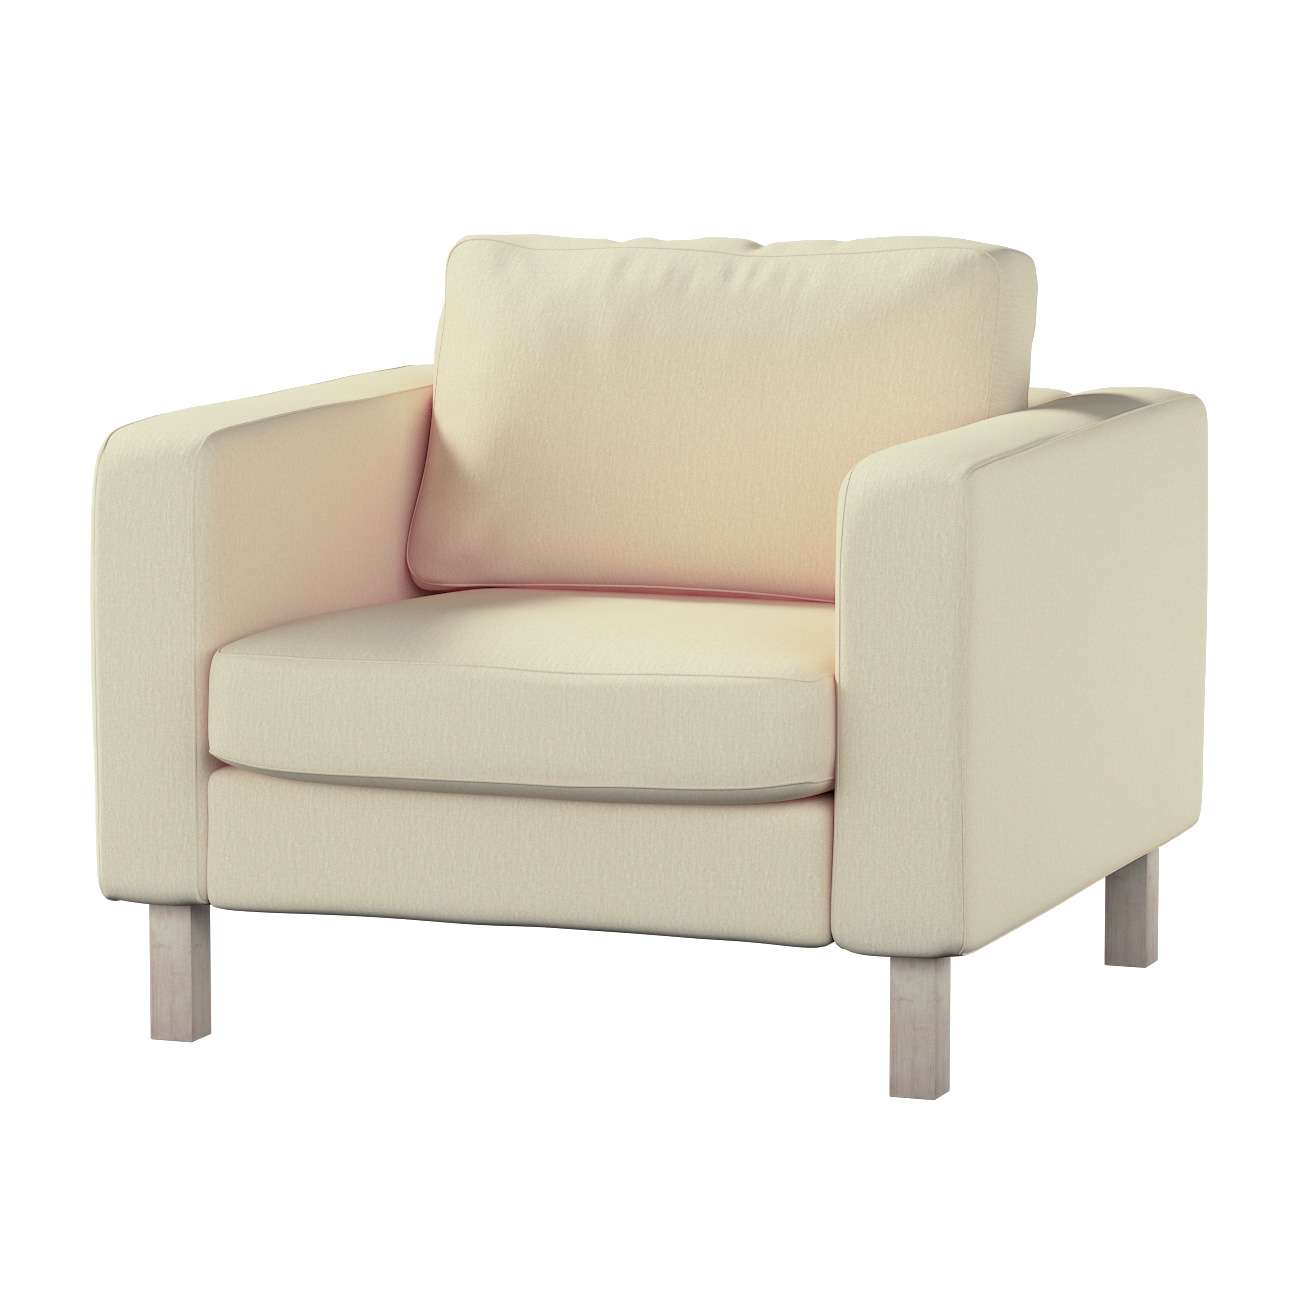 Karlstad armchair cover in collection Chenille, fabric: 702-22